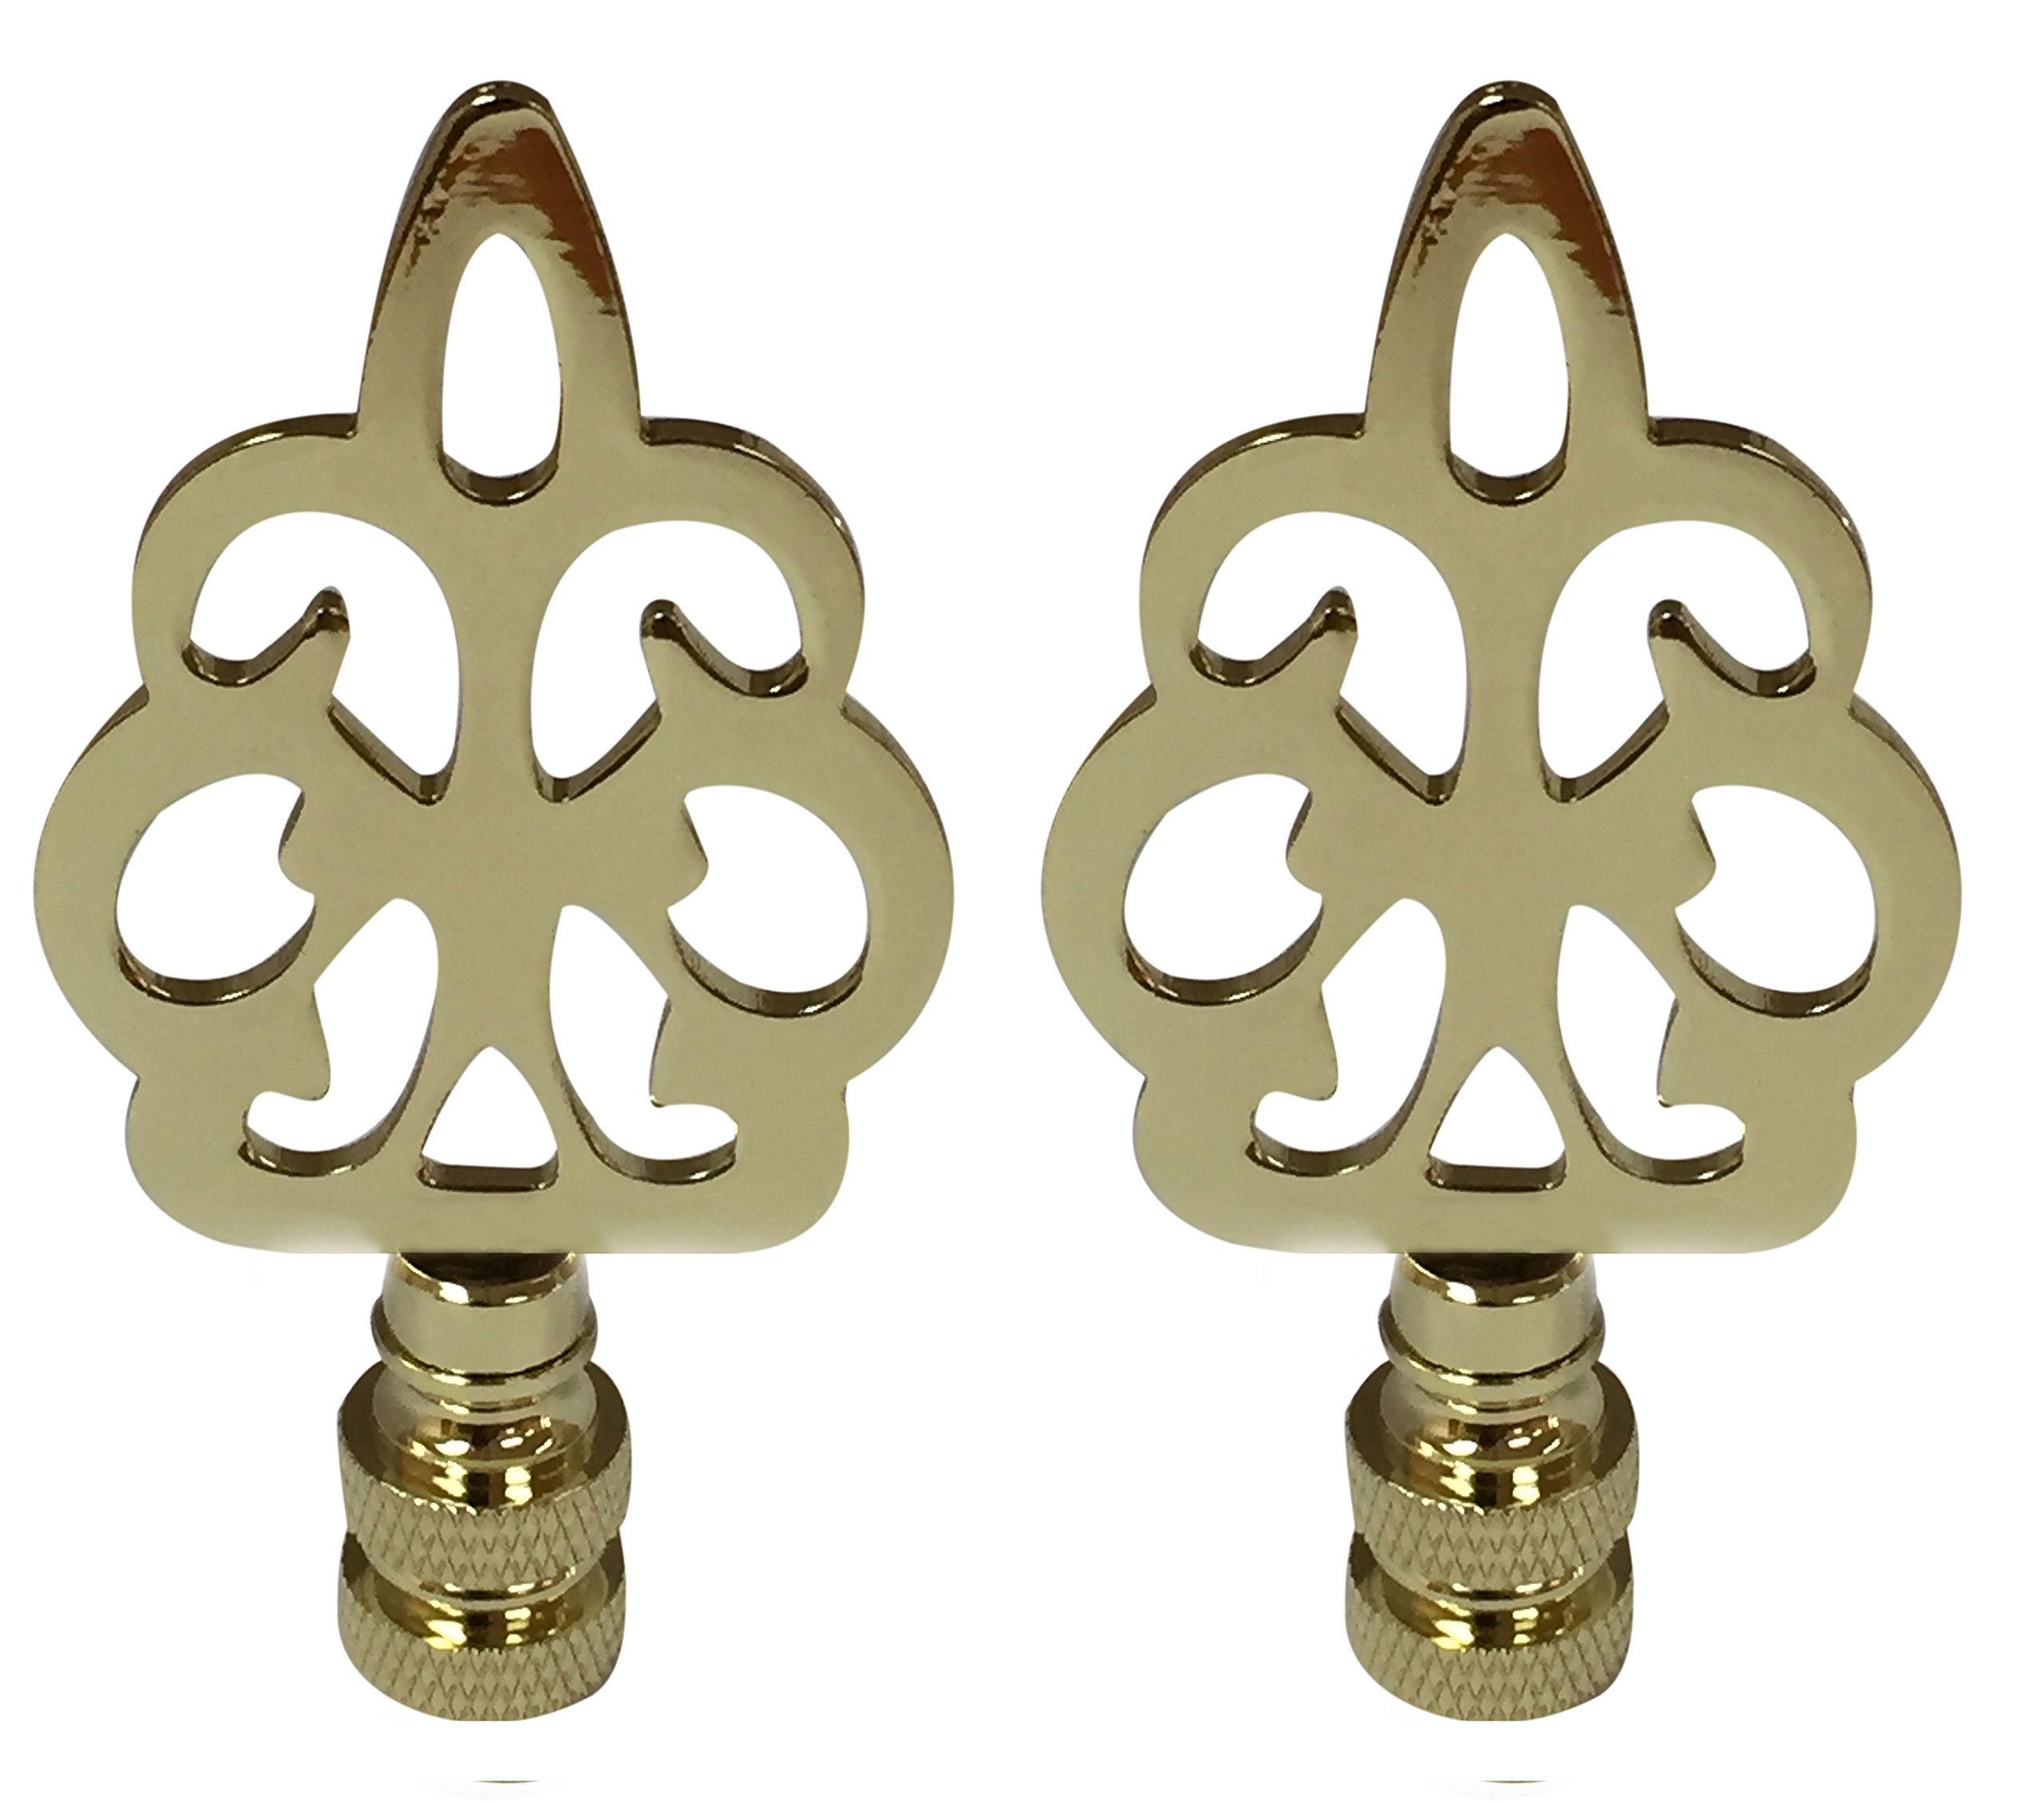 Royal Designs Open Filigree Motif Lamp Finial for Lamp Shade- Polished Brass Set of 2